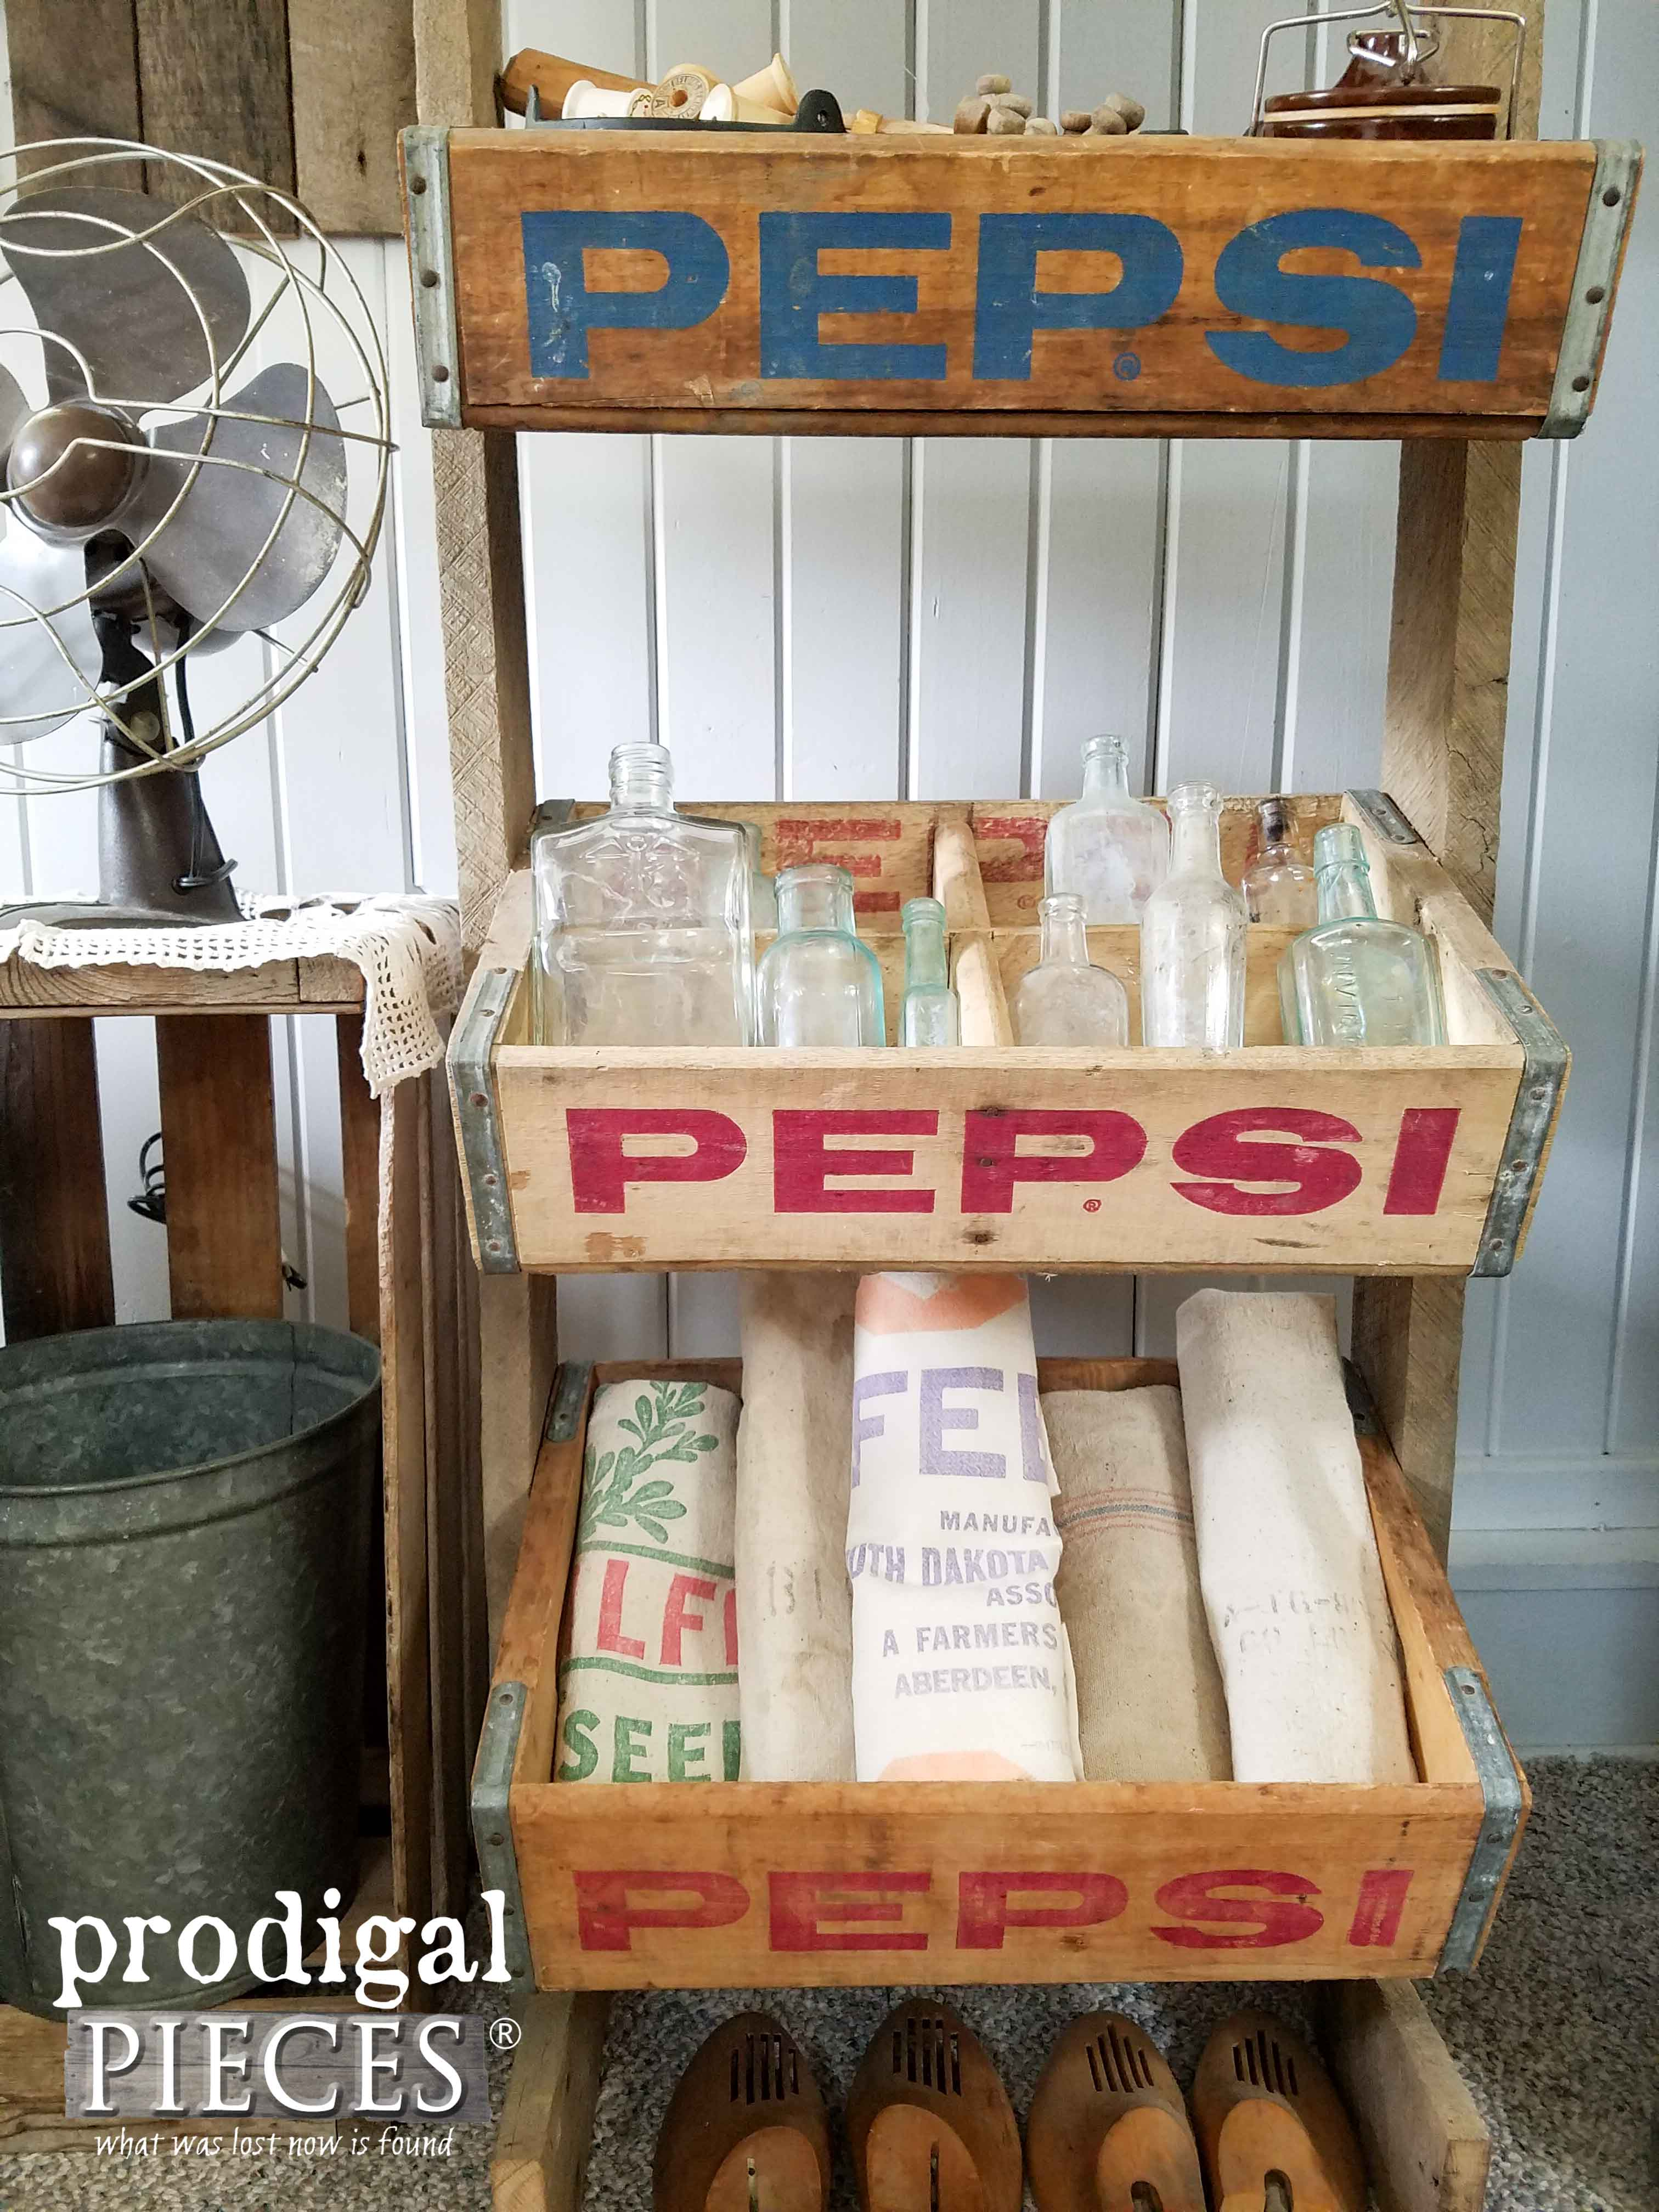 Collection of Antique Apothecary Bottles and Feed Sacks in Vintage Soda Crates | Prodigal Pieces | www.prodigalpieces.com